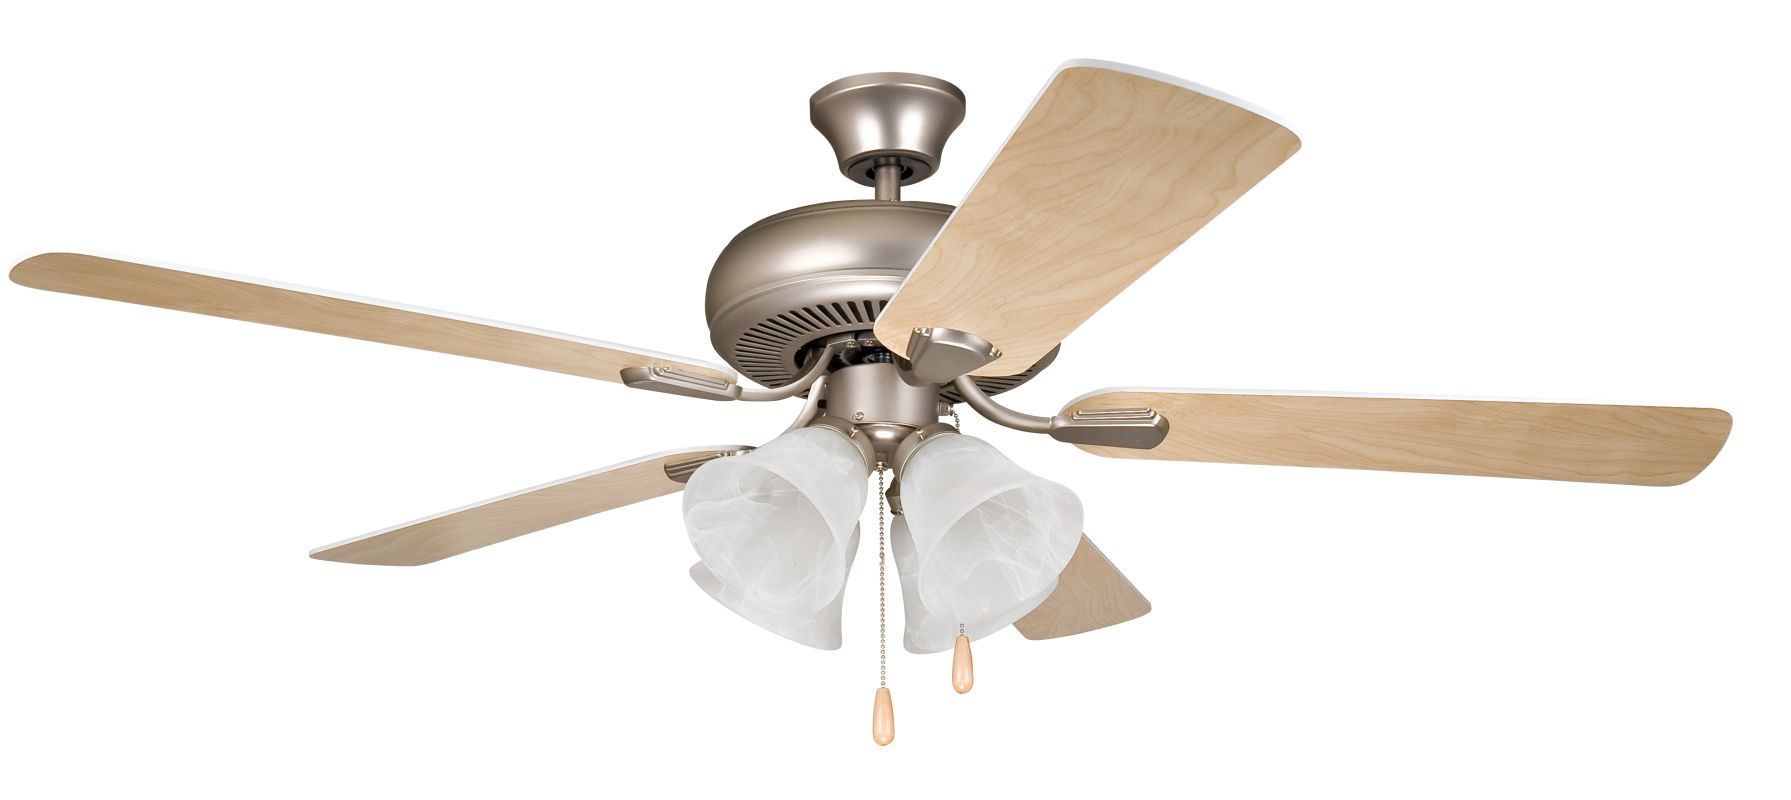 "Ellington Fans Piedmont Builder 52"" 5 Blade Indoor Ceiling Fan -"